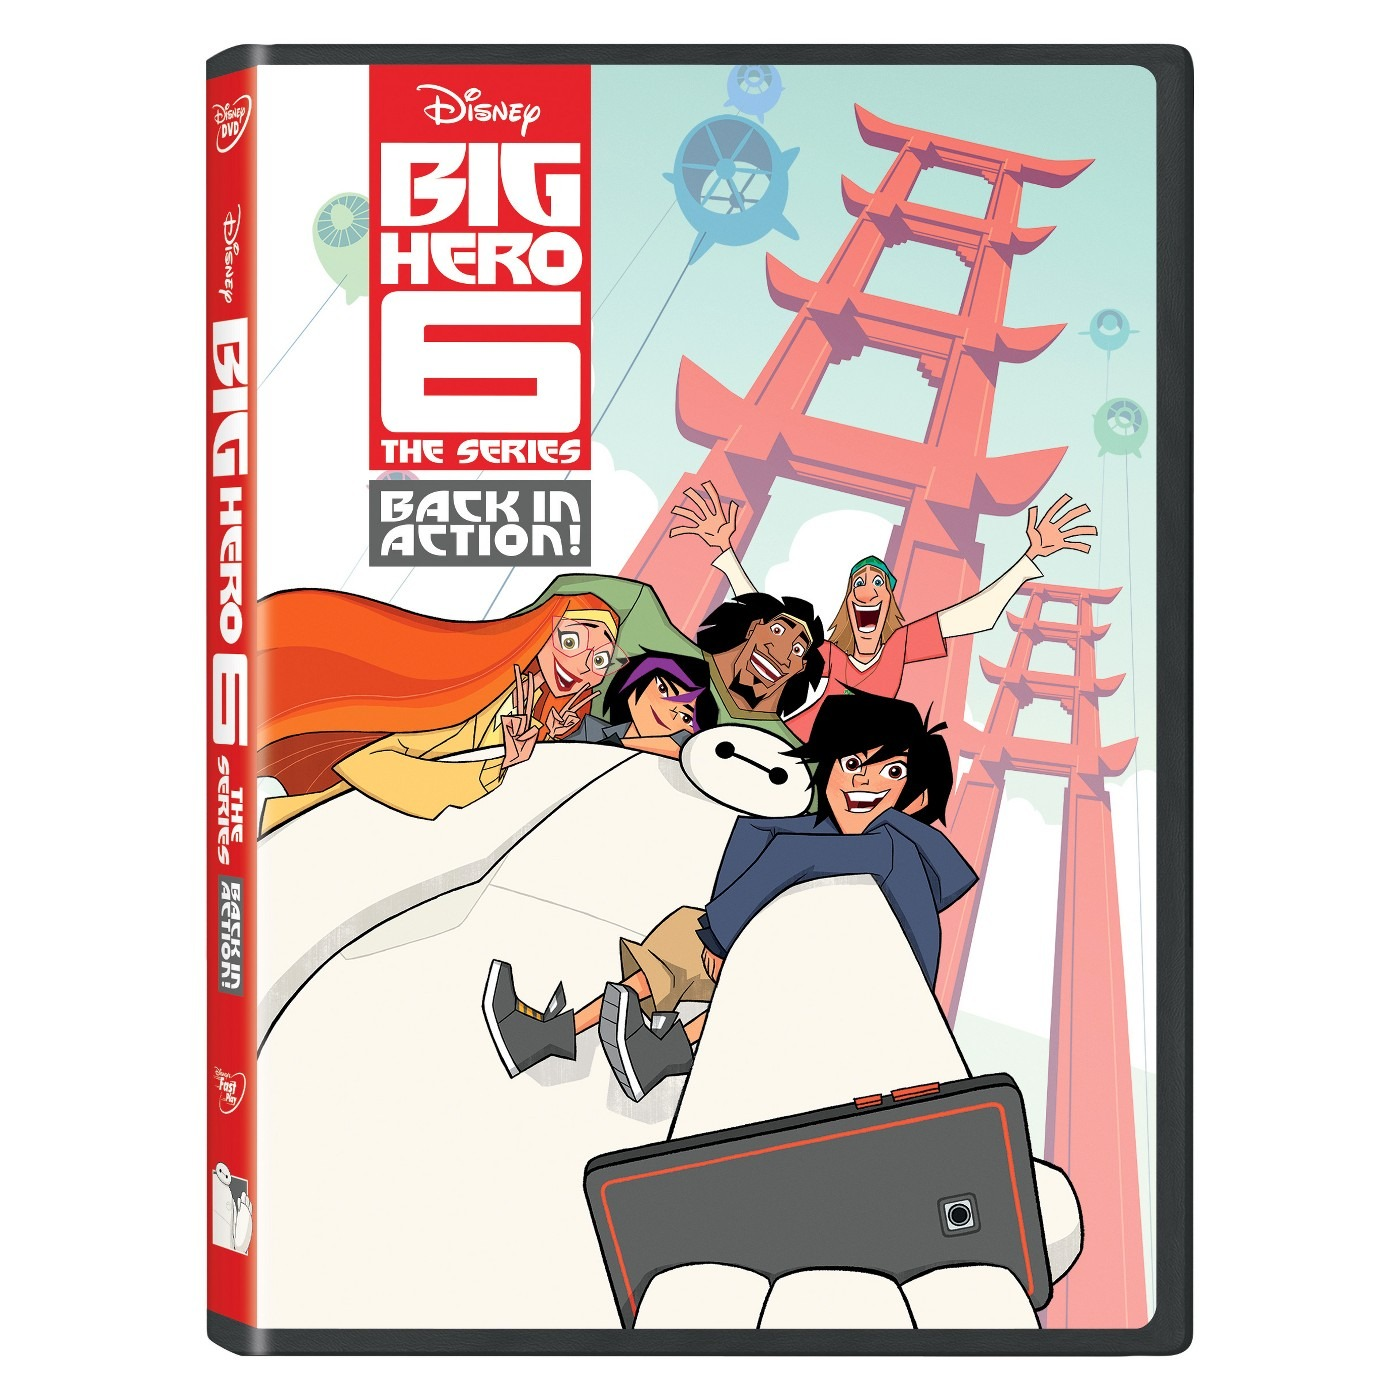 BIG HERO 6 THE SERIES – BACK IN ACTION!